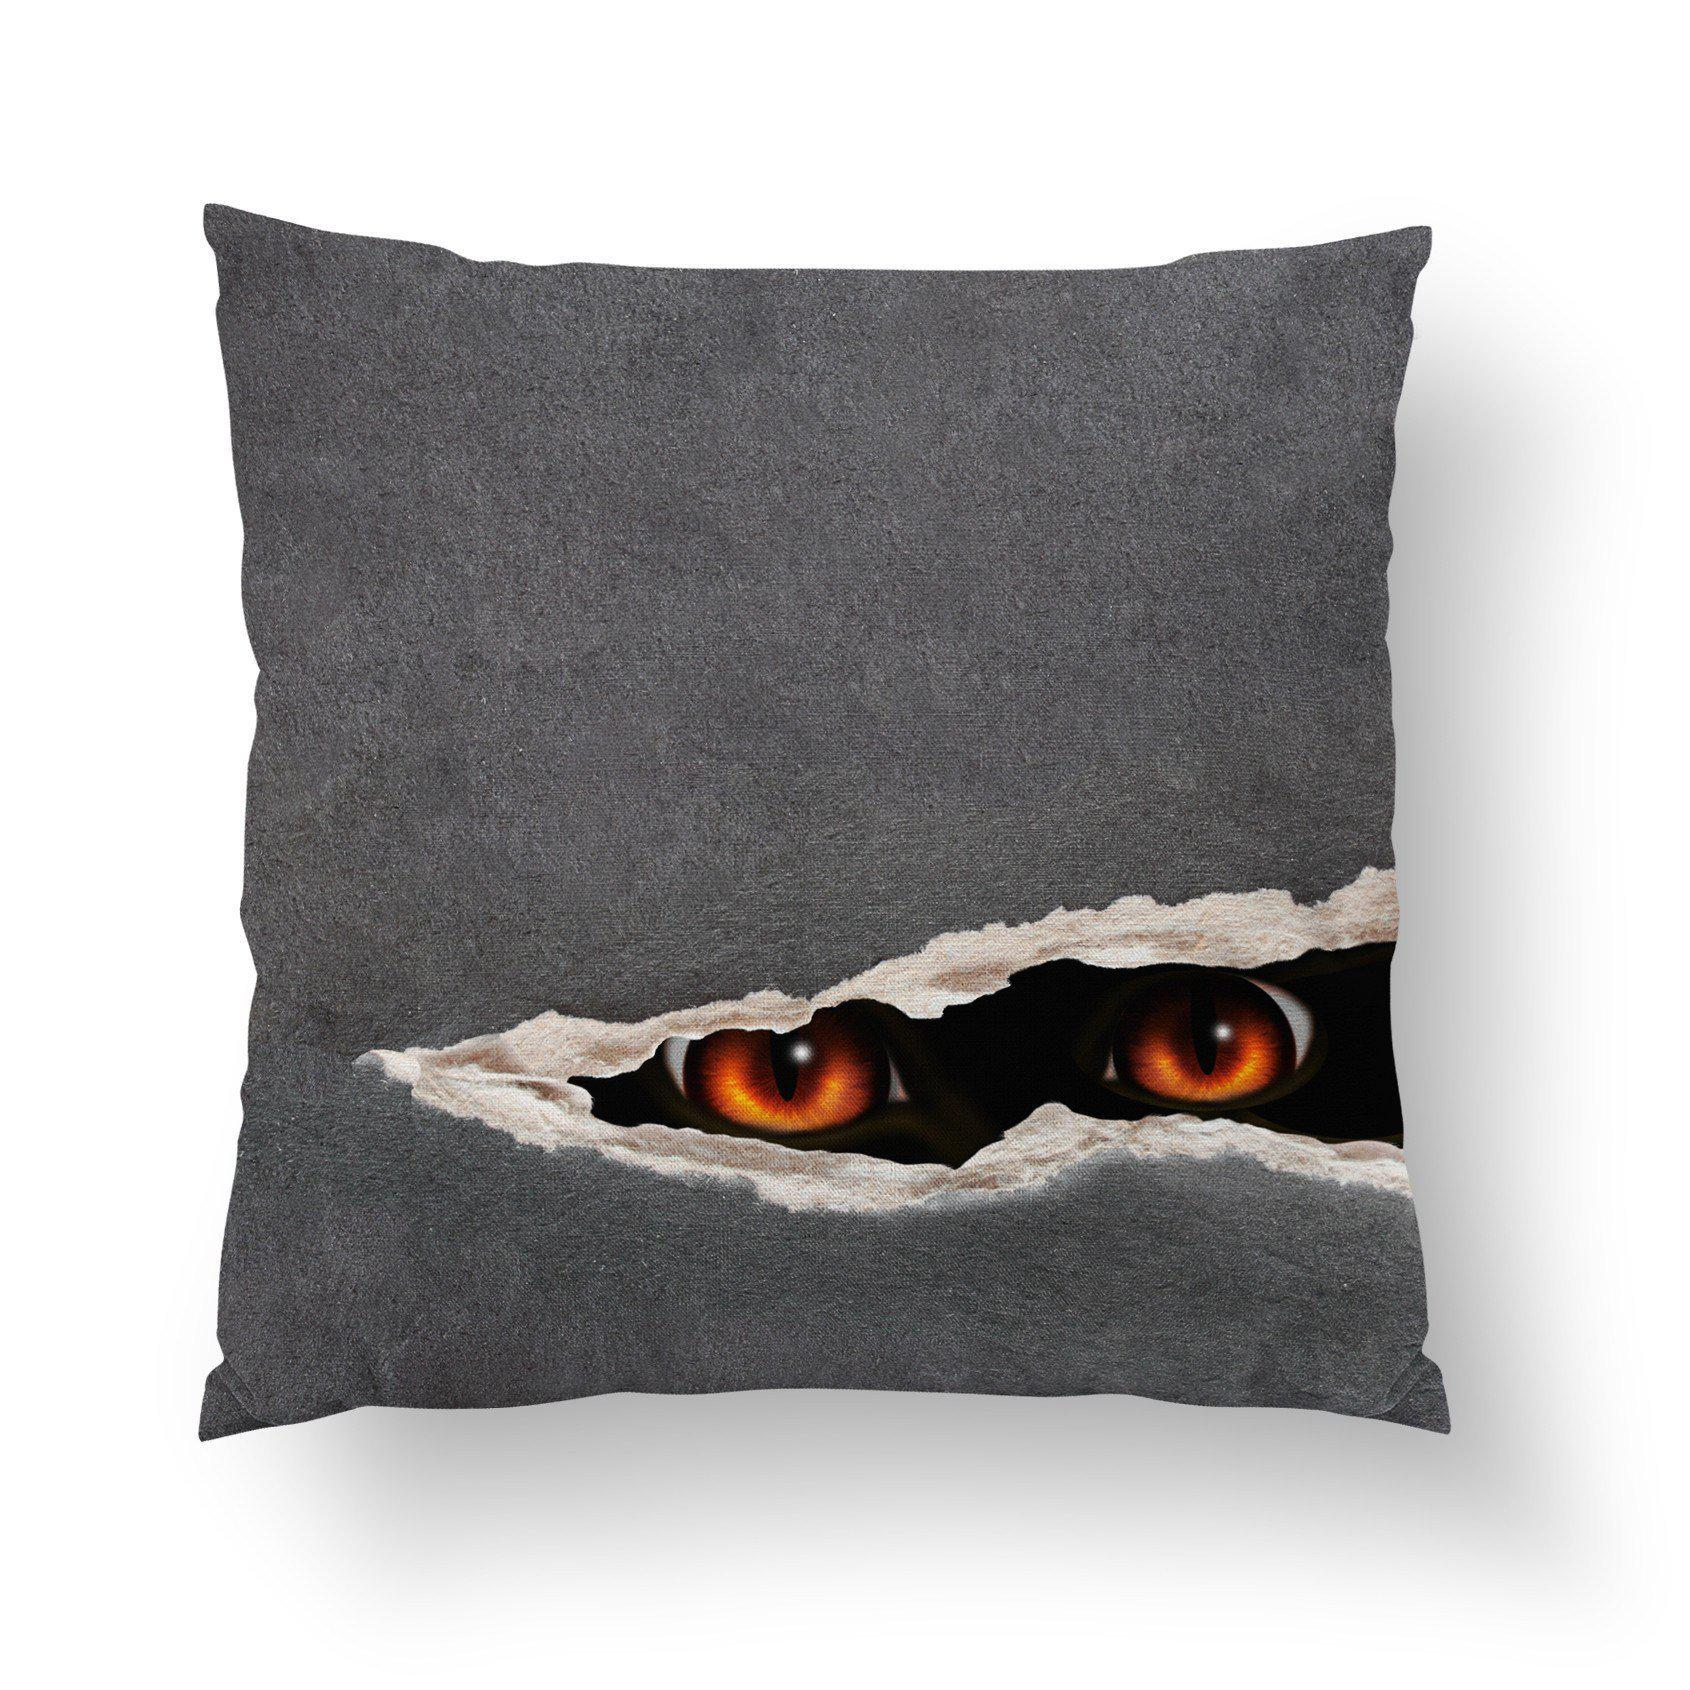 Spooky Throw Pillow - Pillow Covers - W.FRANCIS